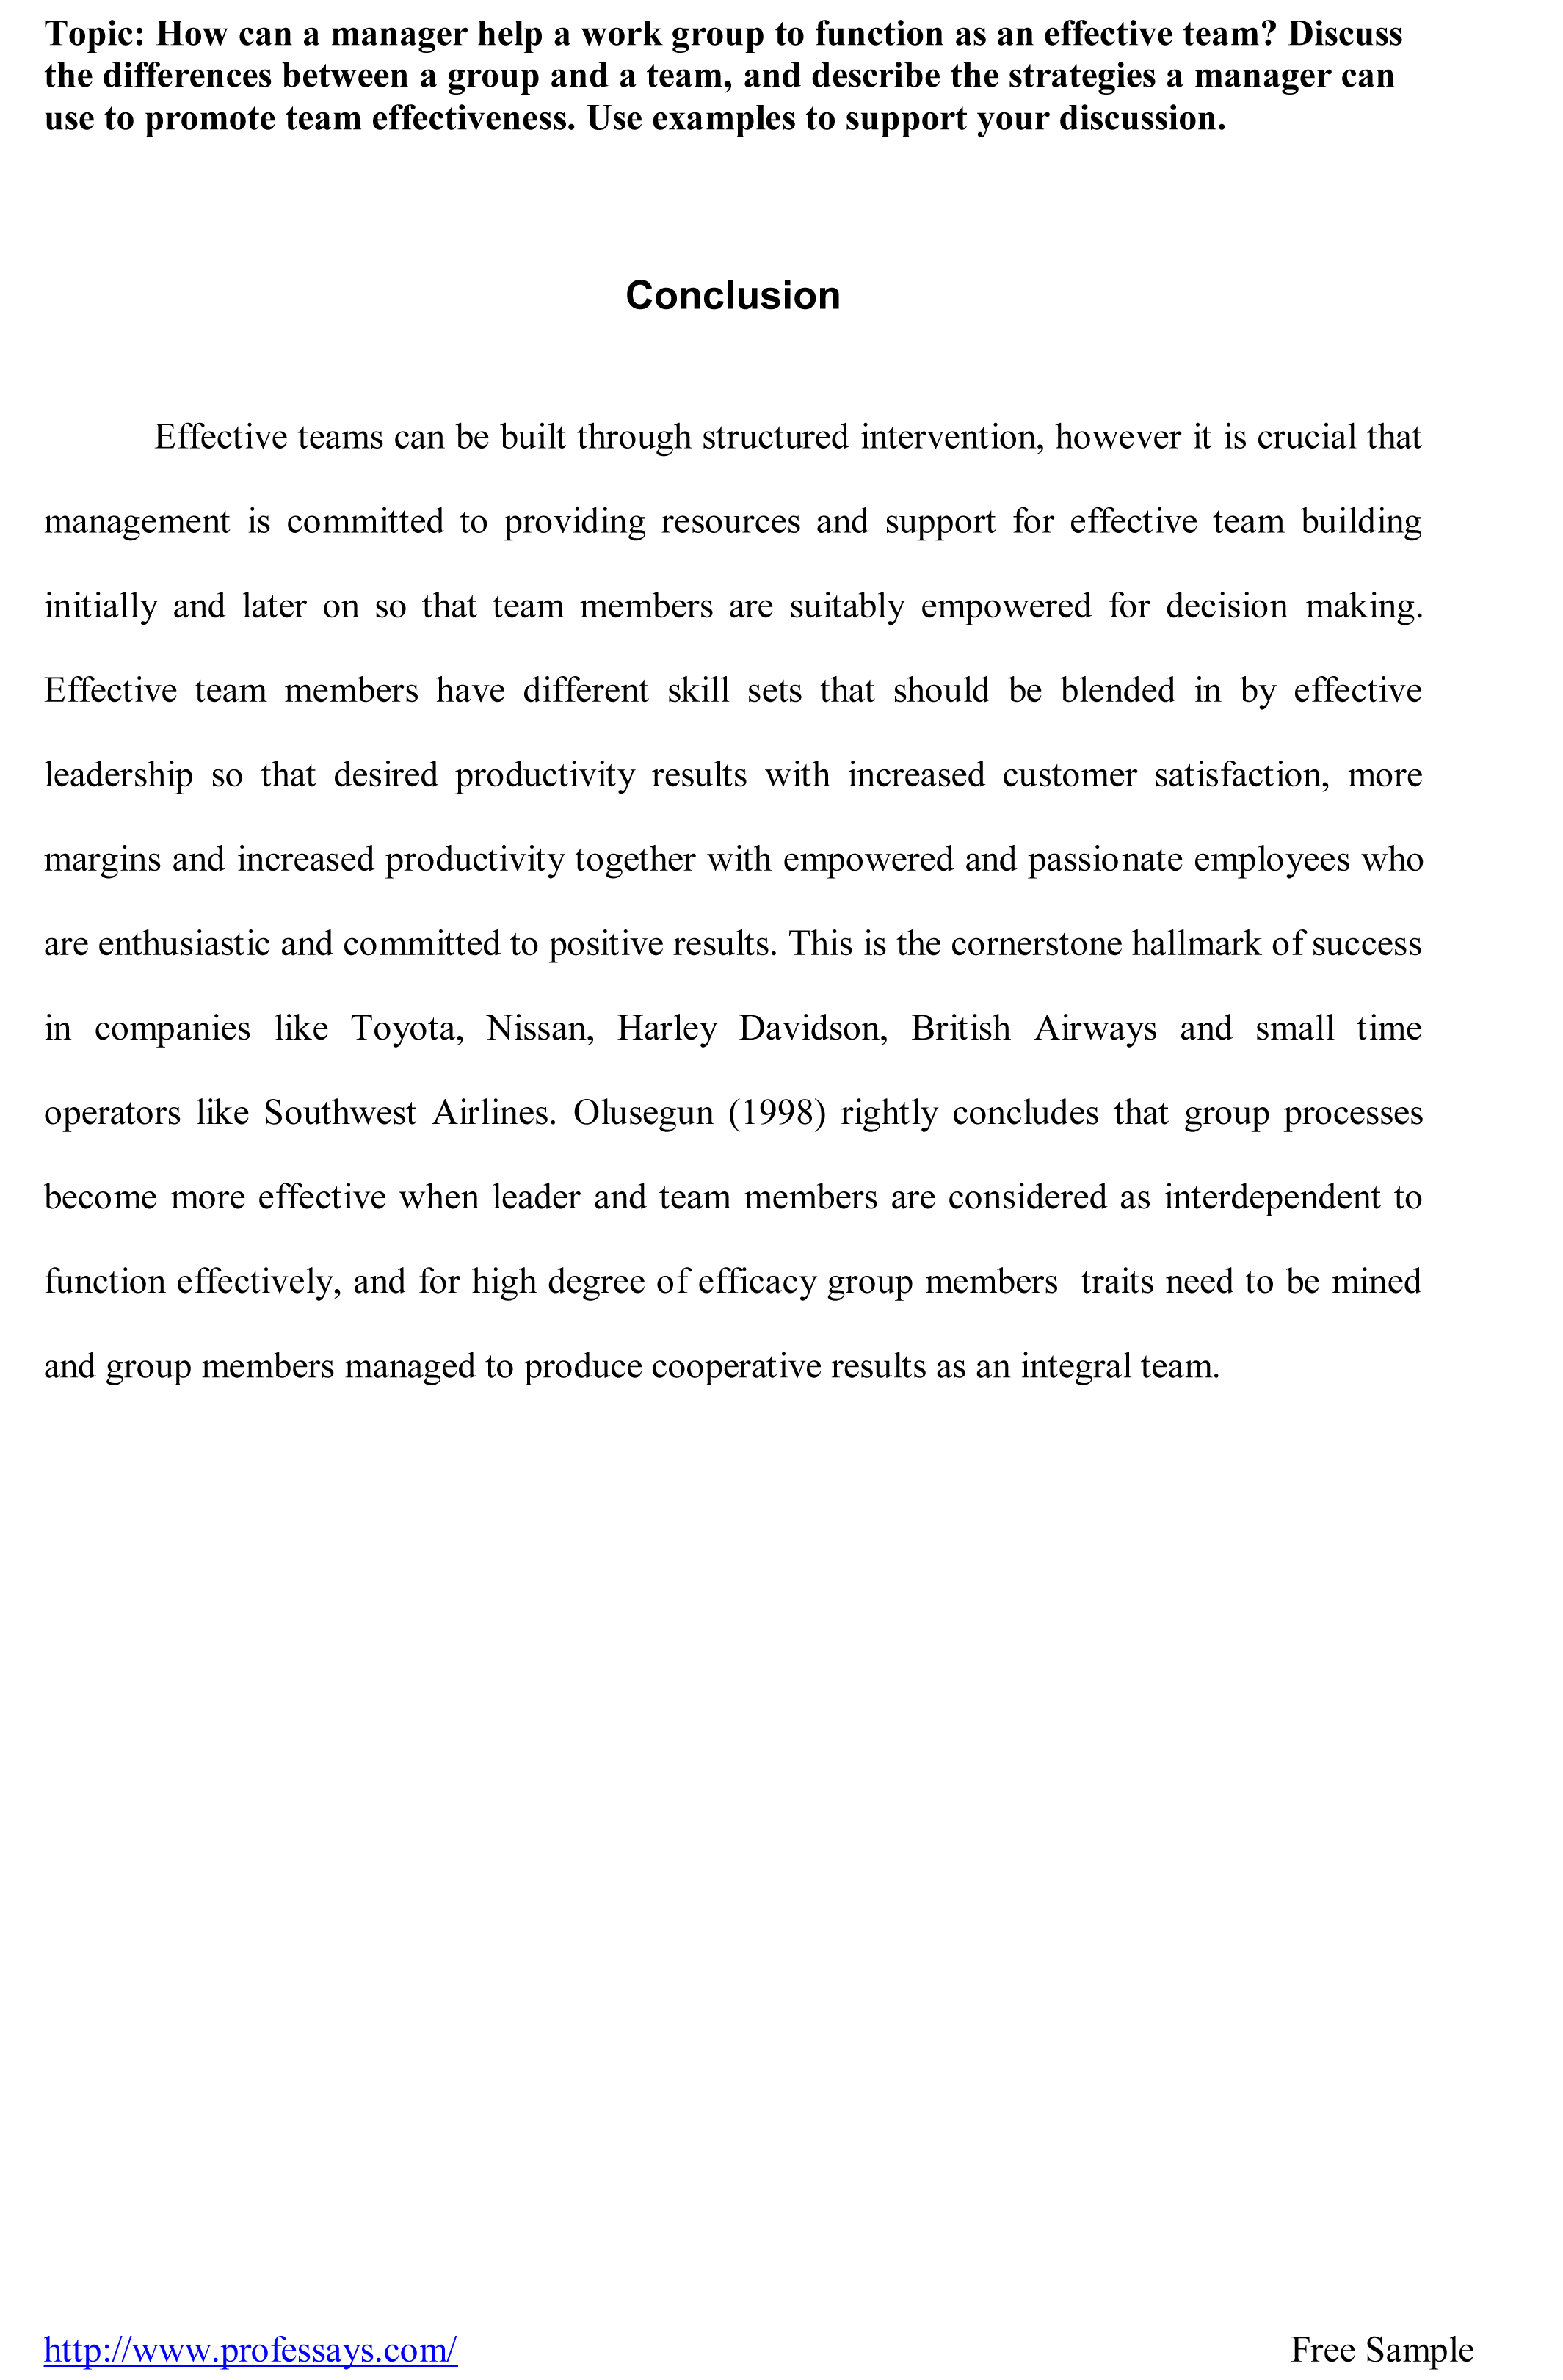 001 Example Of Research Paper Conclusion Sample For Astounding Conclusions In About Smoking Full